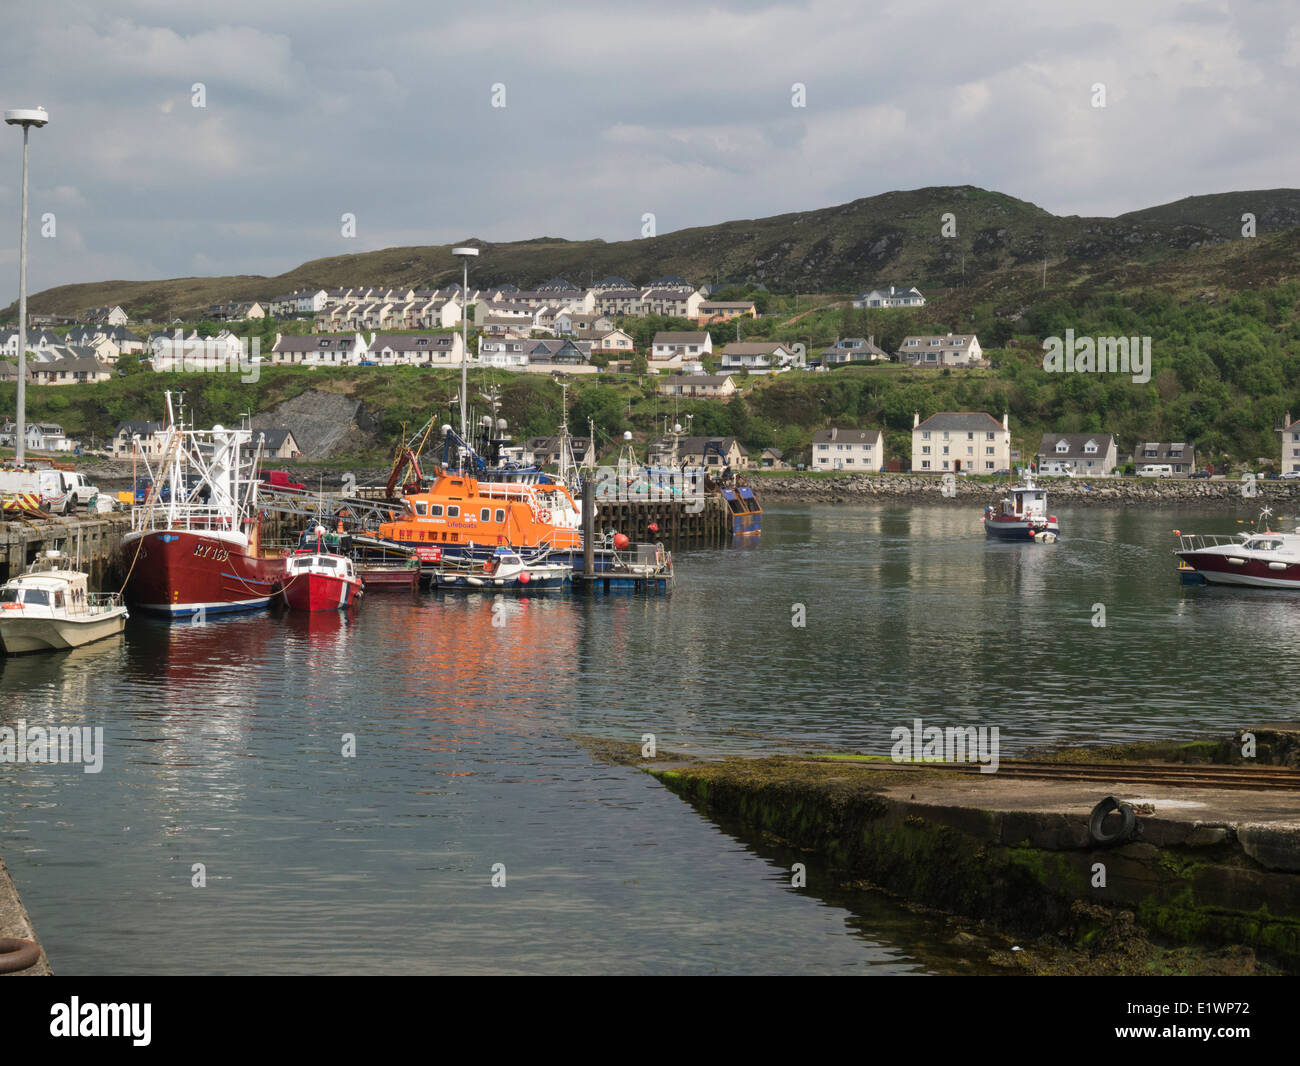 Fishing boats and lifeboat in Mallaig harbour on Scotland's west coast in the Highlands of Scotland a  port - Stock Image